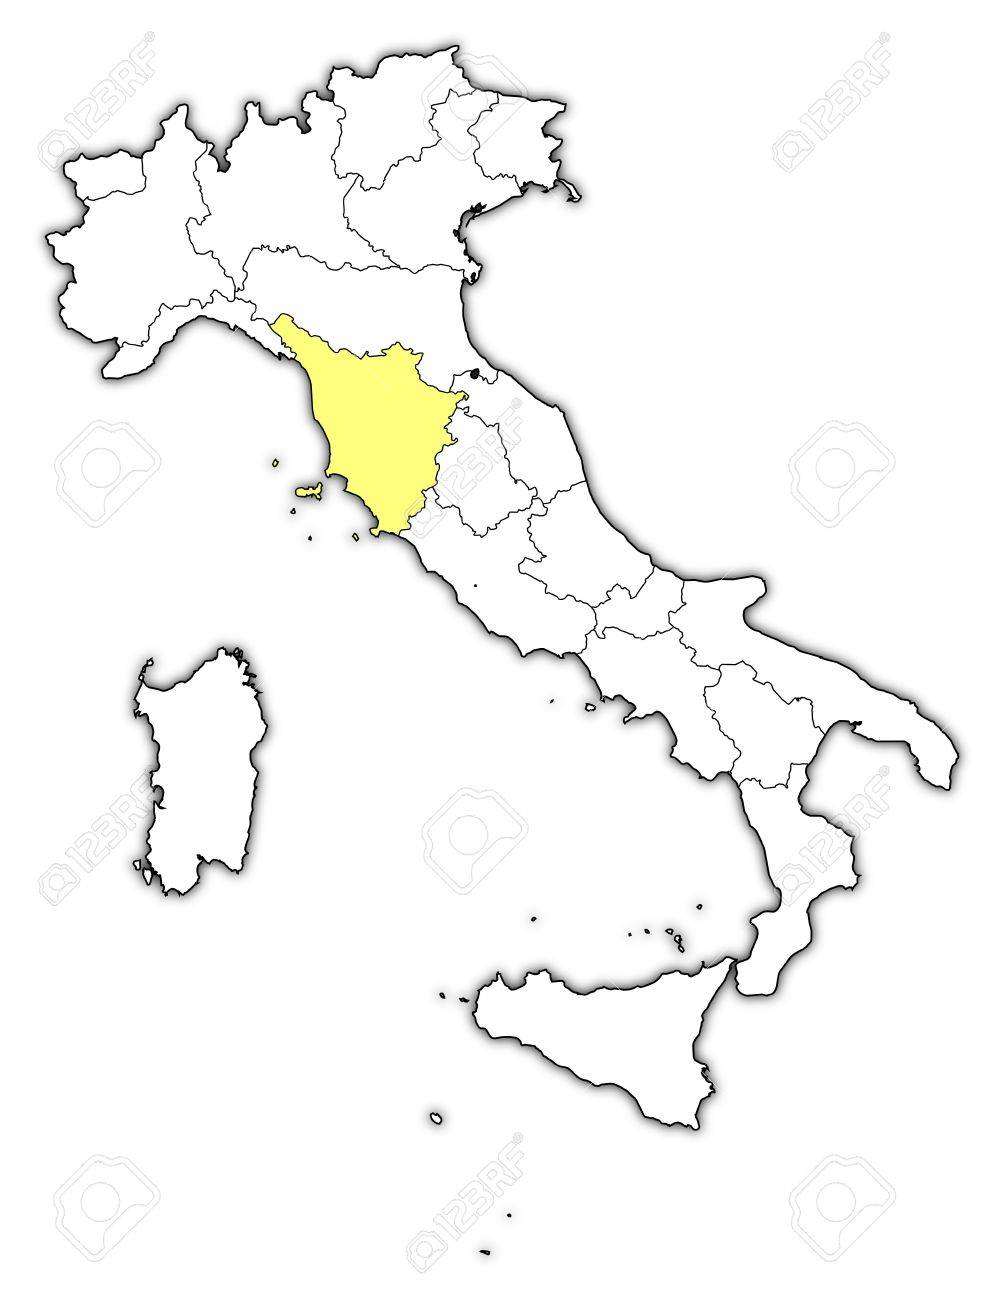 Tuscany Map Of Italy.Political Map Of Italy With The Several Regions Where Tuscany